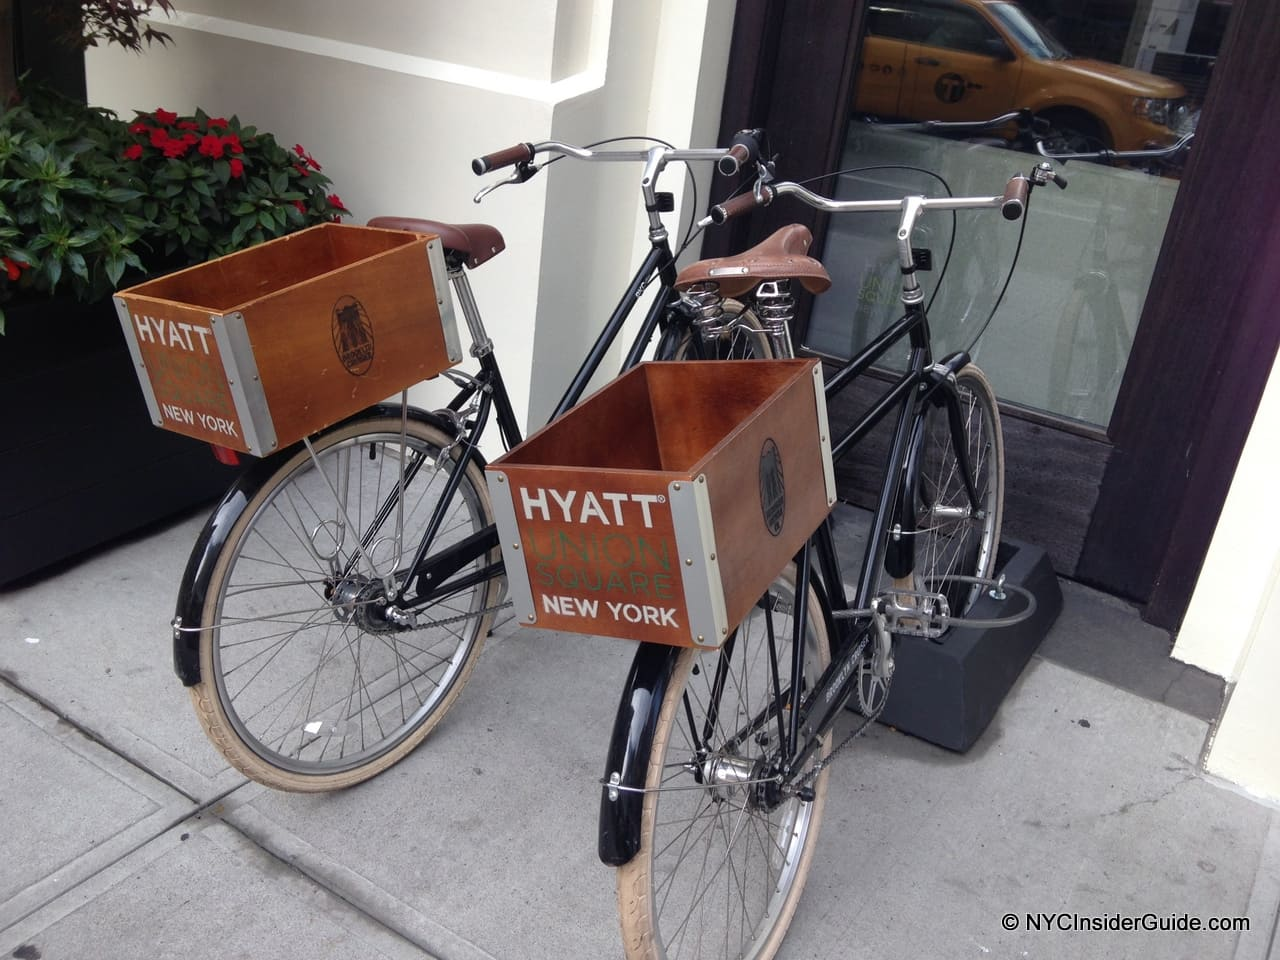 NYC Hotels with Free Bicycles